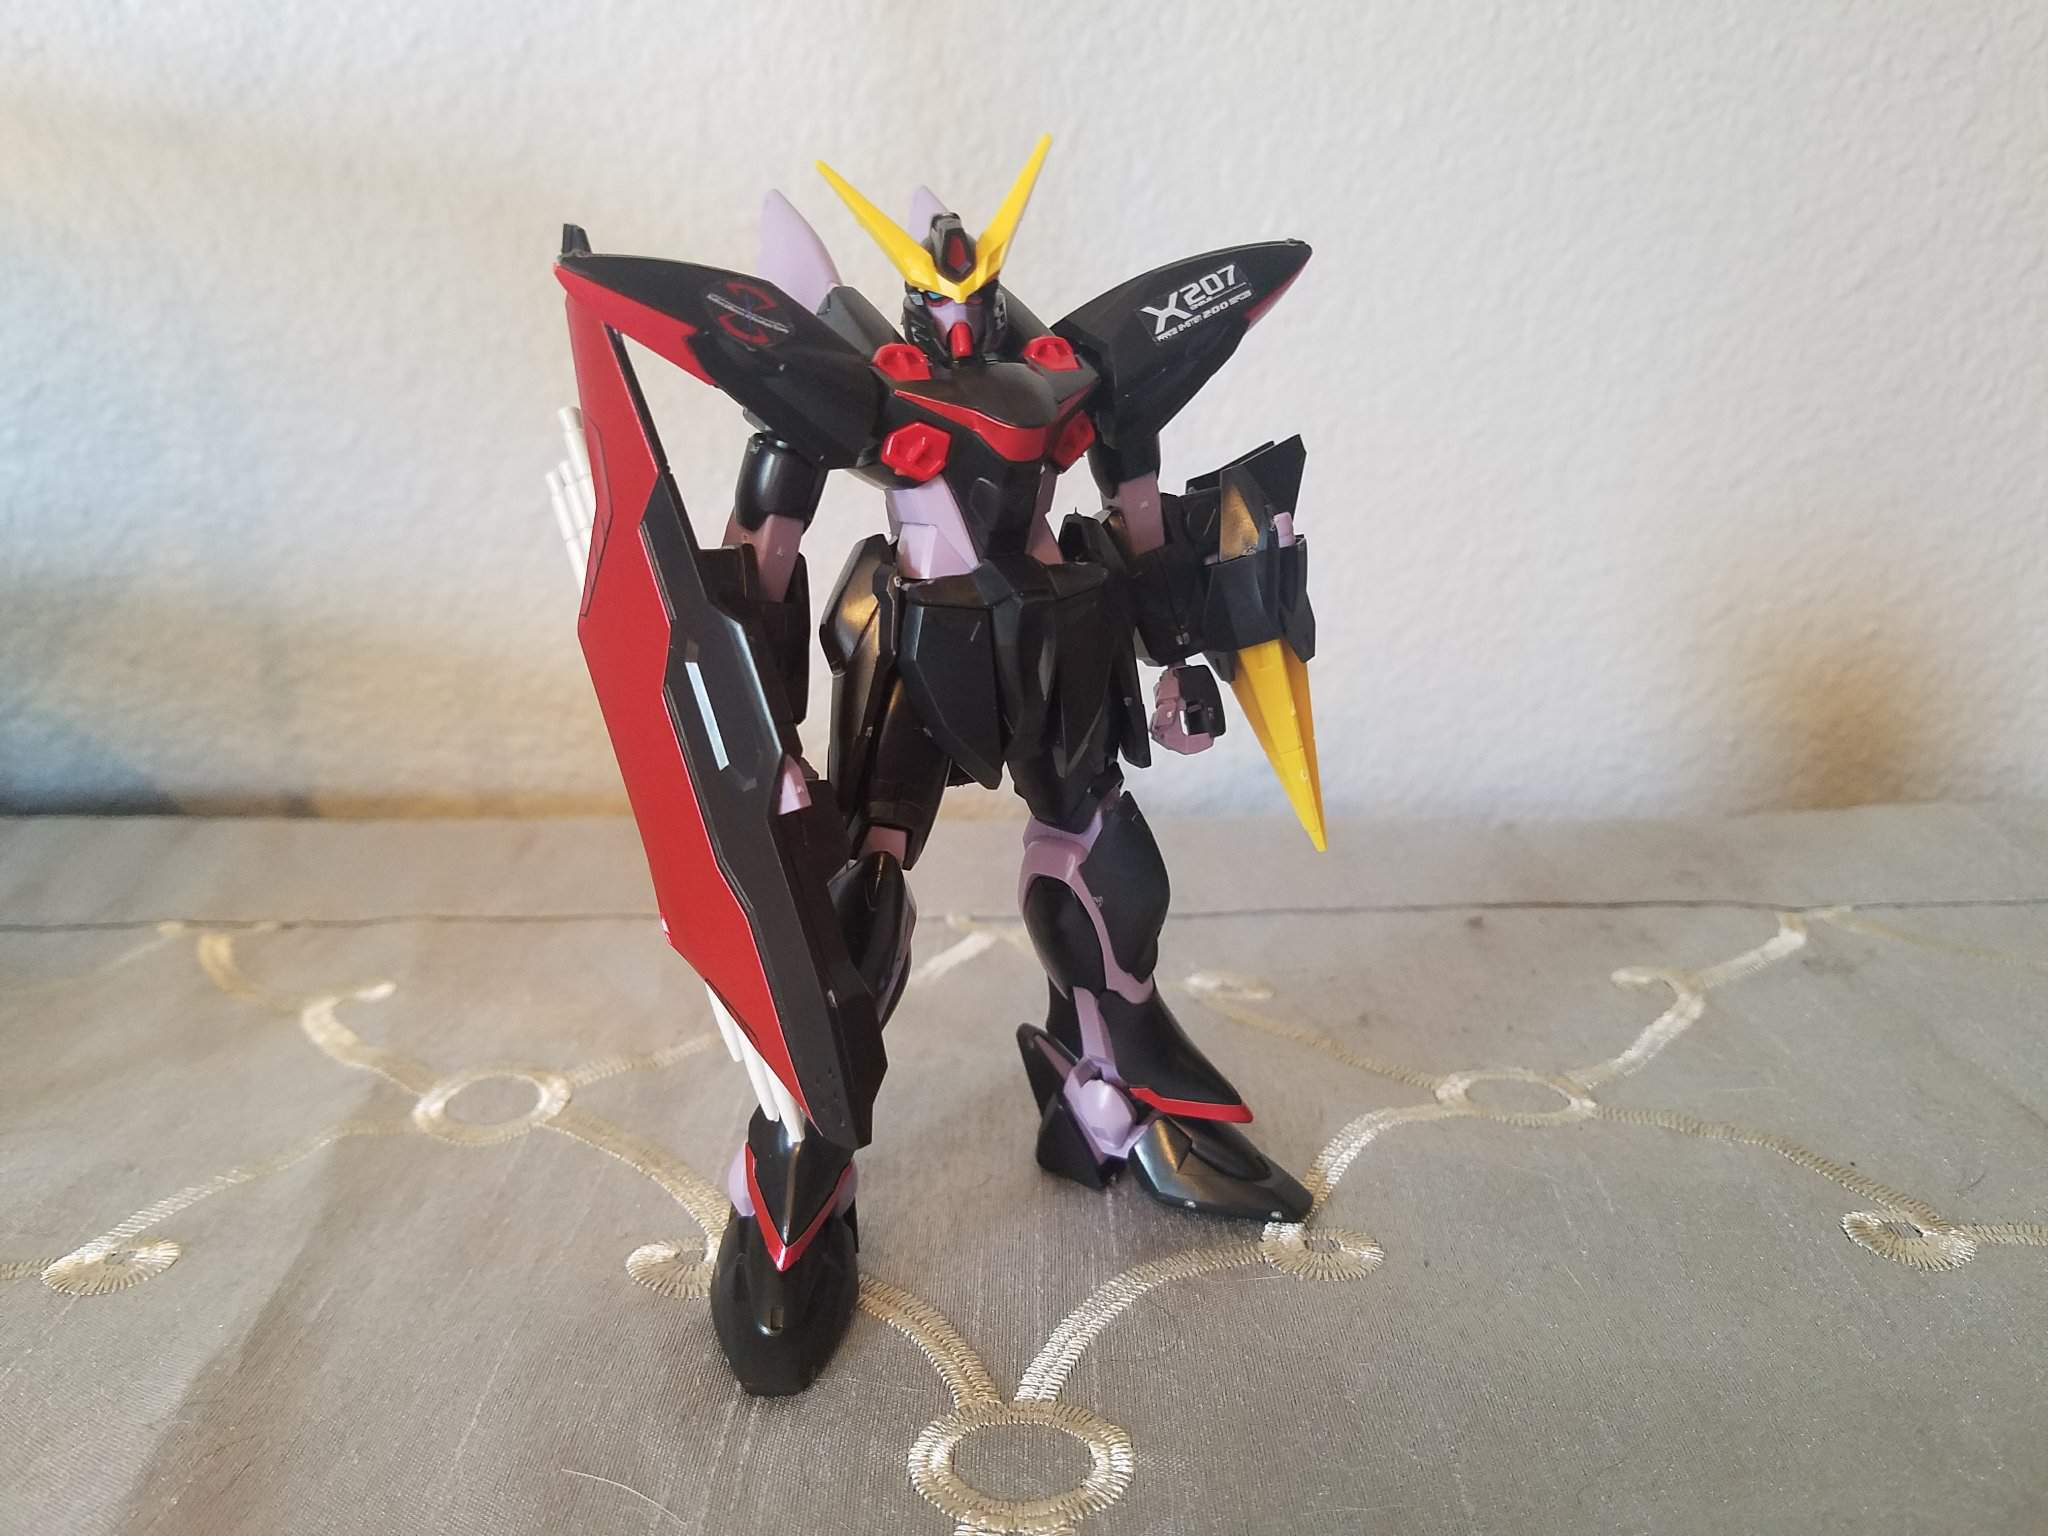 Exceptional Gundam X Hg Review Picture Download